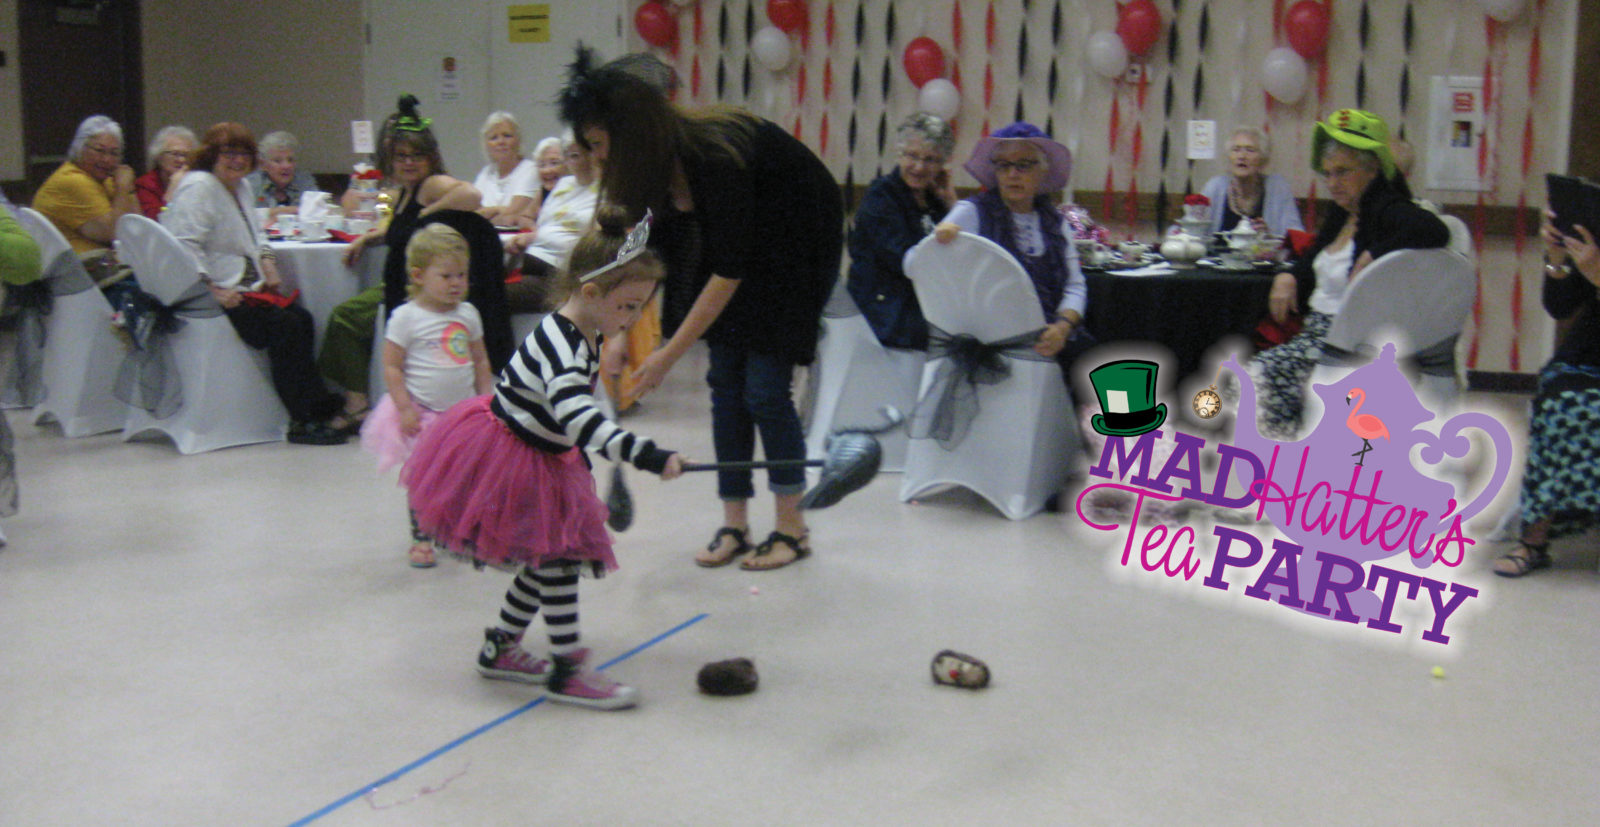 Mad Hatters Tea Party 2016 event kid playing flamingo croquet